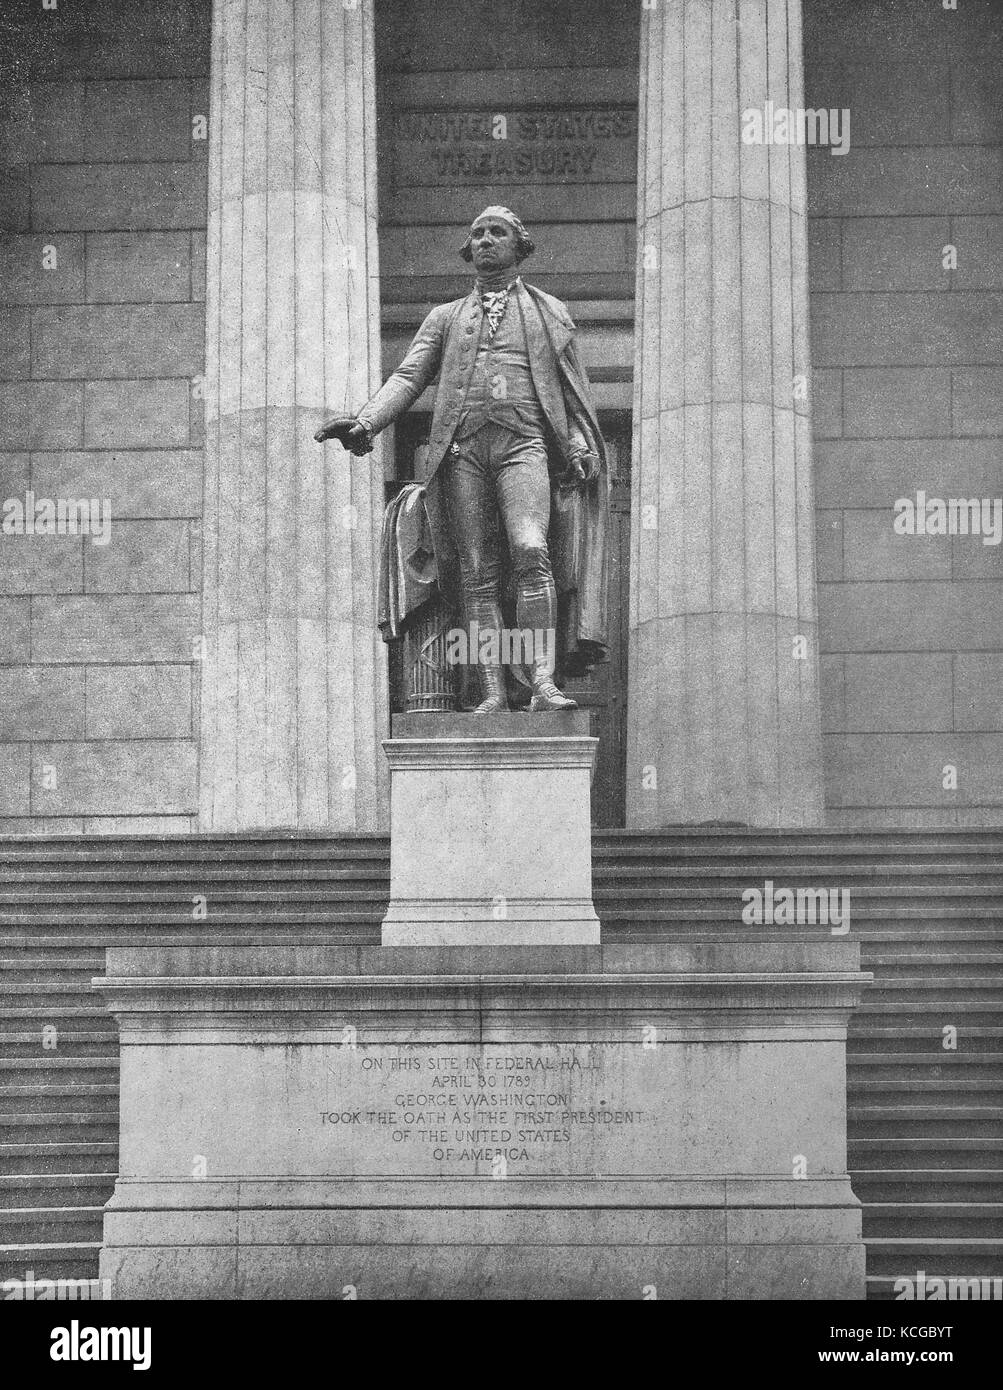 United States of America, New York City, the statue of Georg Washington in front of the United States Treasury in - Stock Image